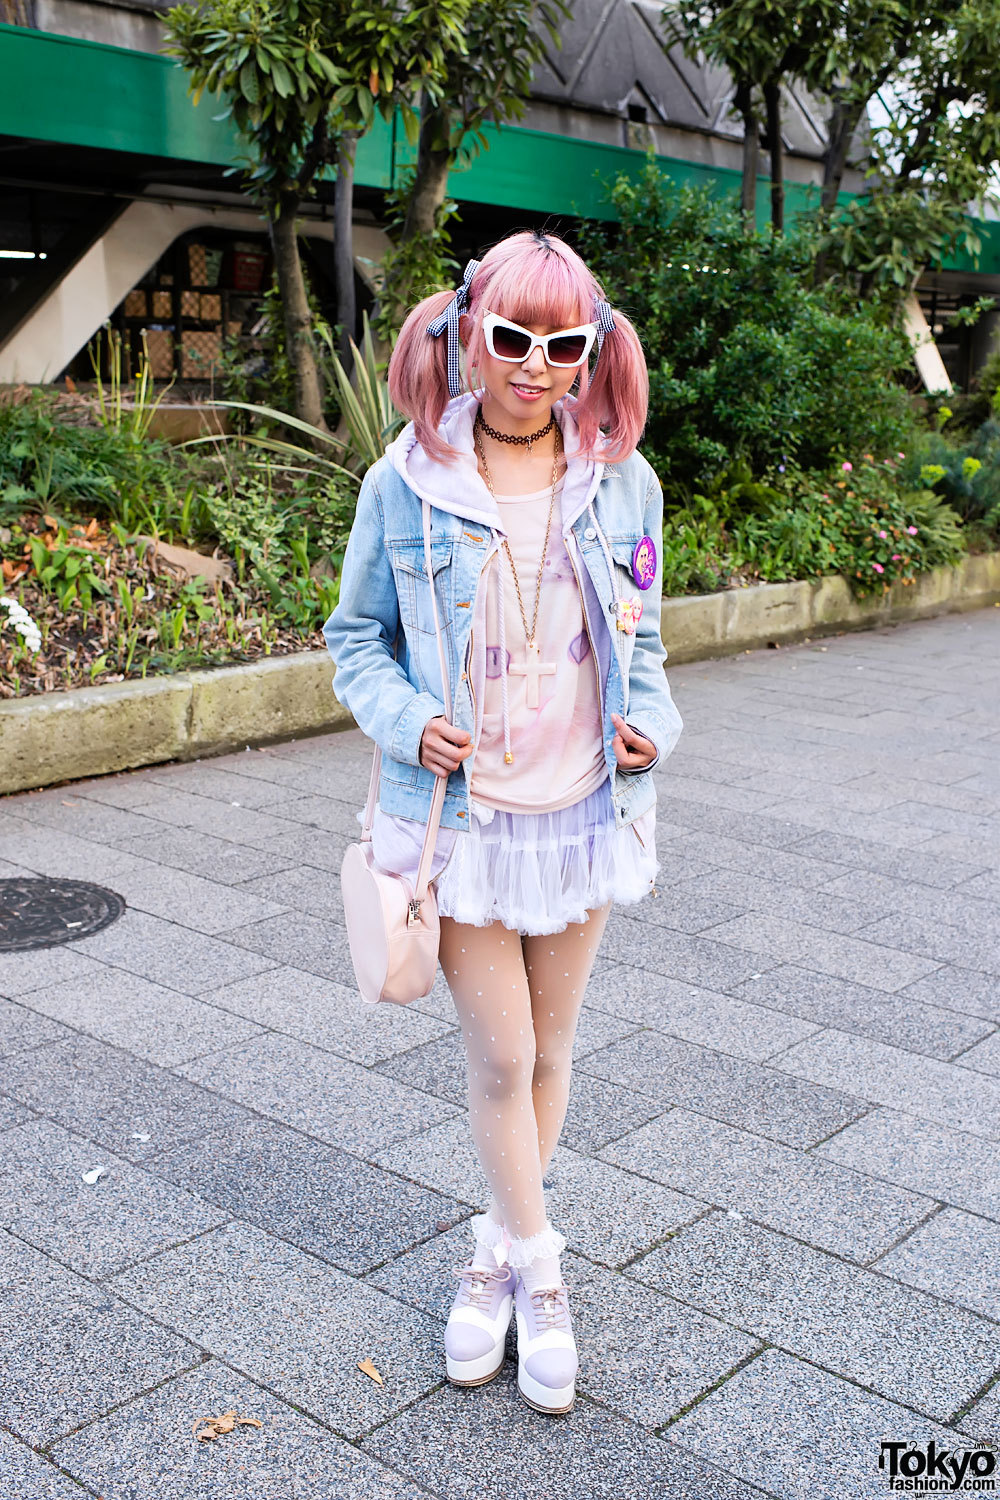 Fun Shibuya girl w/ cute pink hairstyle, tulle skirt & tall Esperanza platform shoes.